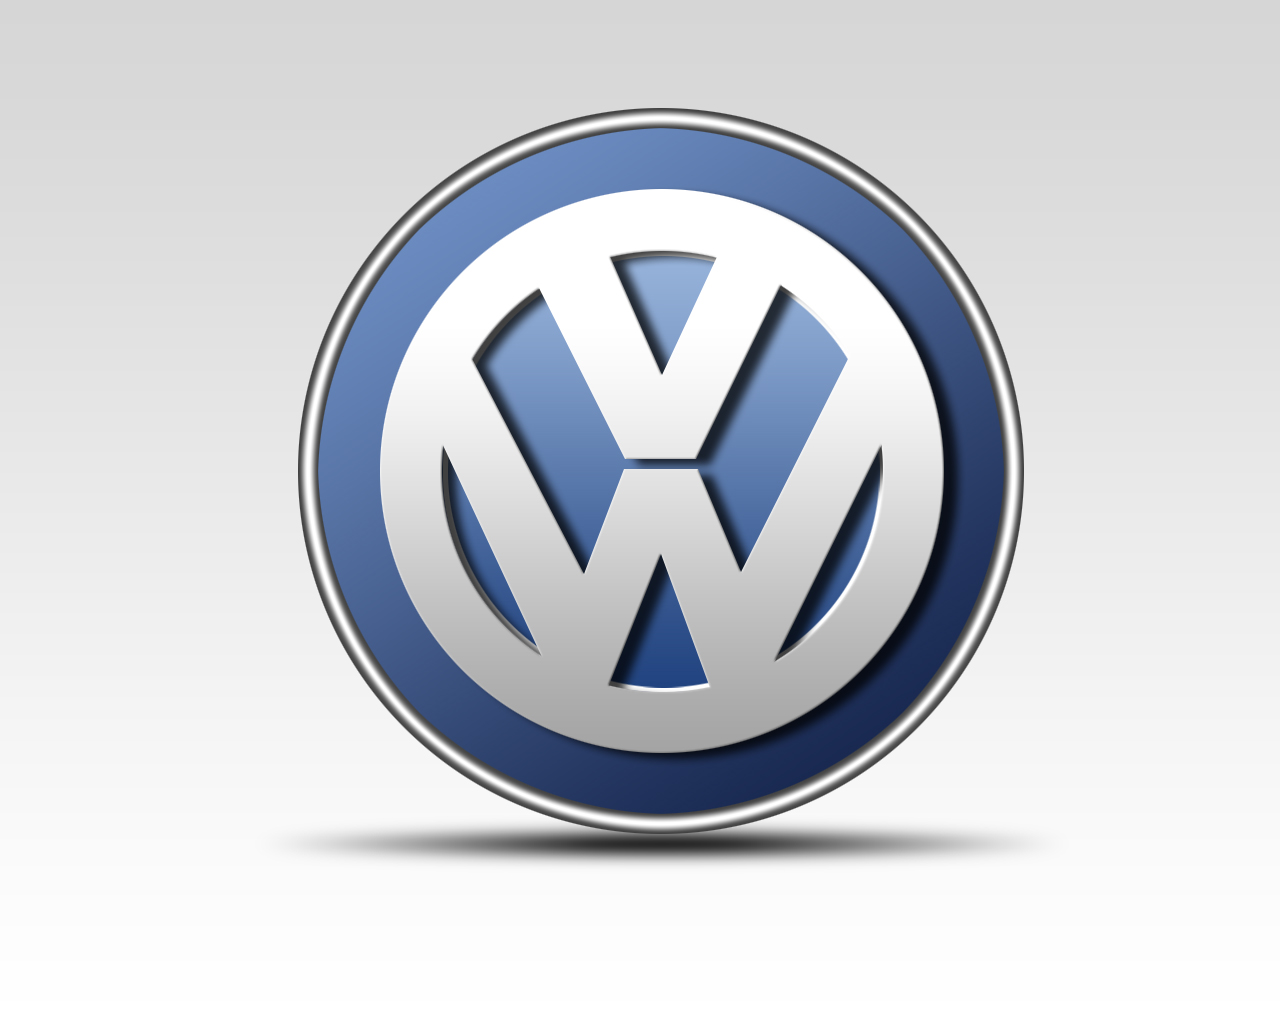 Volkswagen logo photo - 6